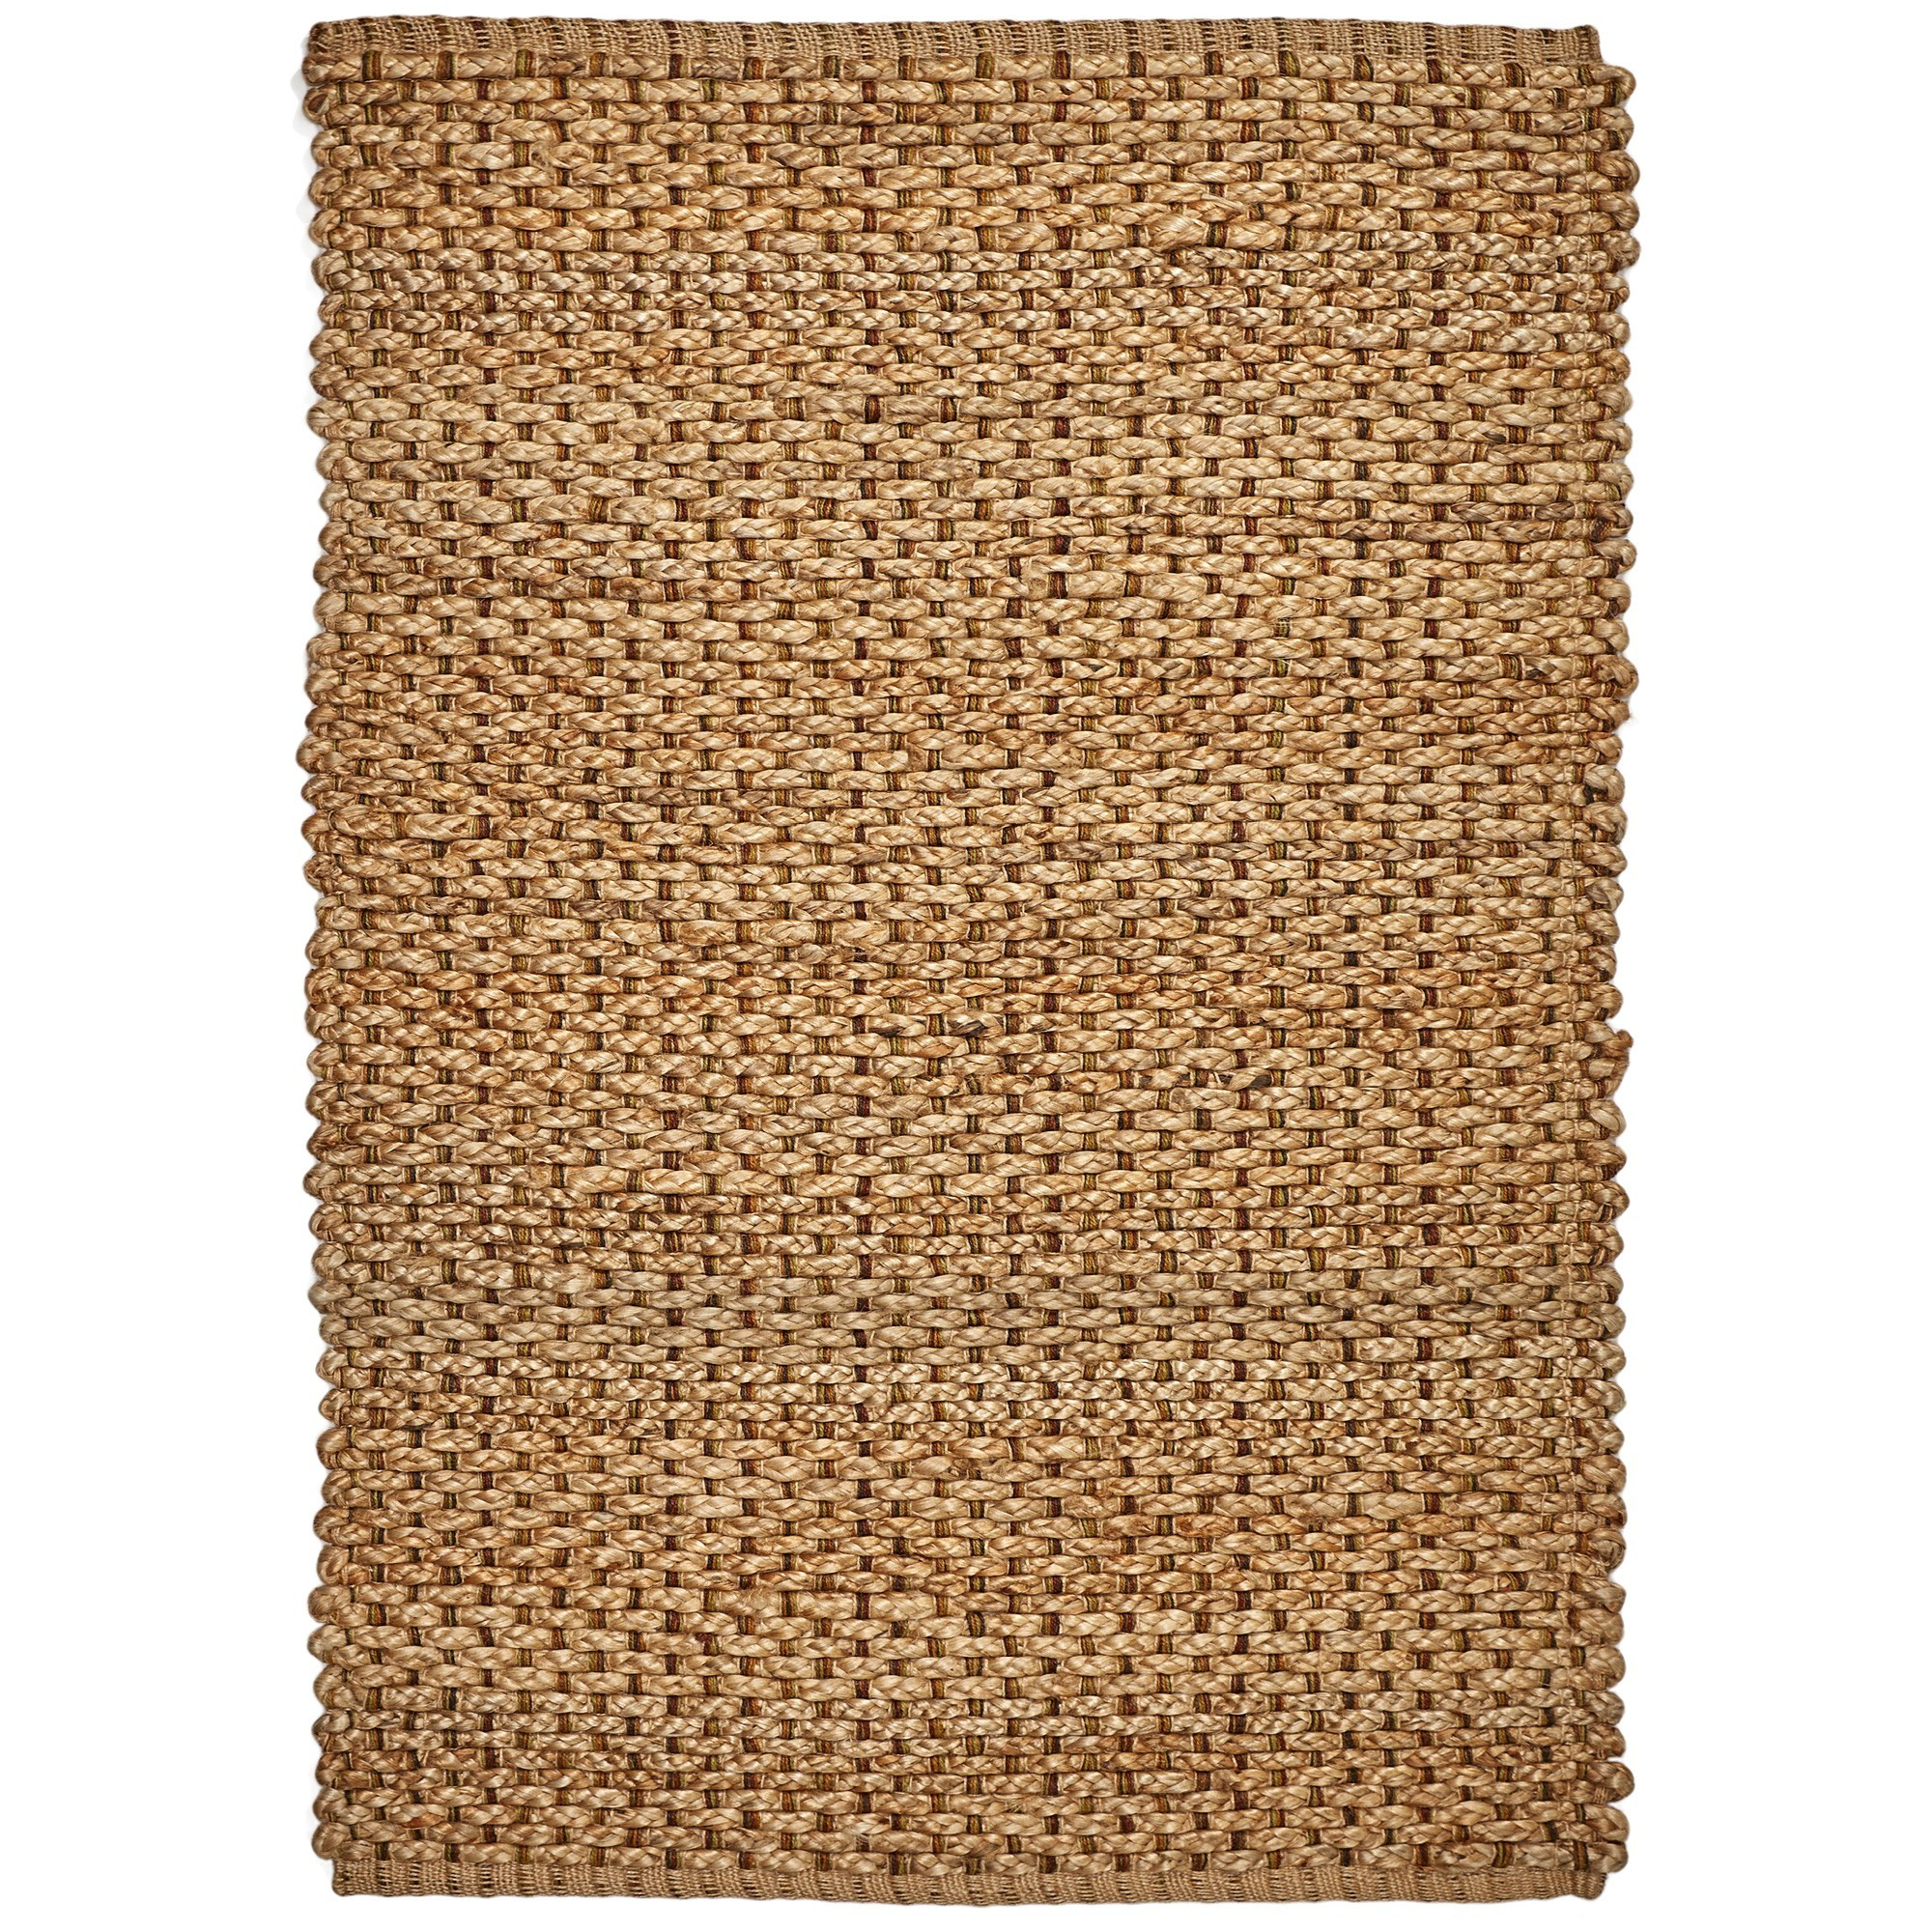 Braids Jute Rug, 320x230cm, Natural